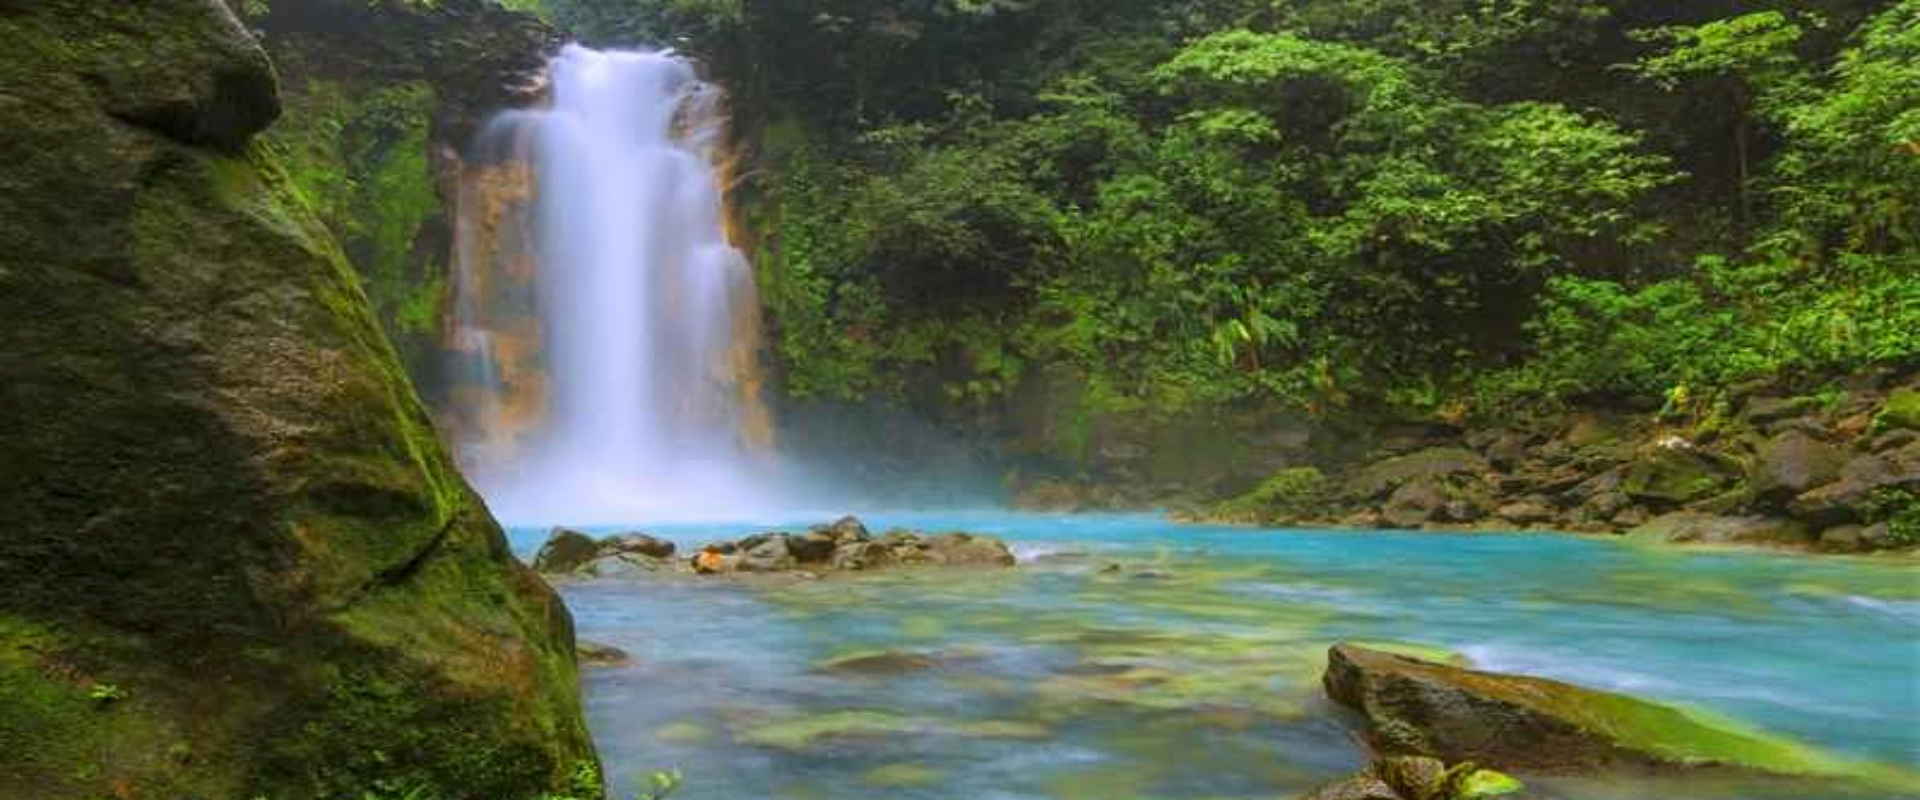 Río Celeste and Tenorio Volcano Guided Rainforest Hike  | Costa Rica Jade Tours